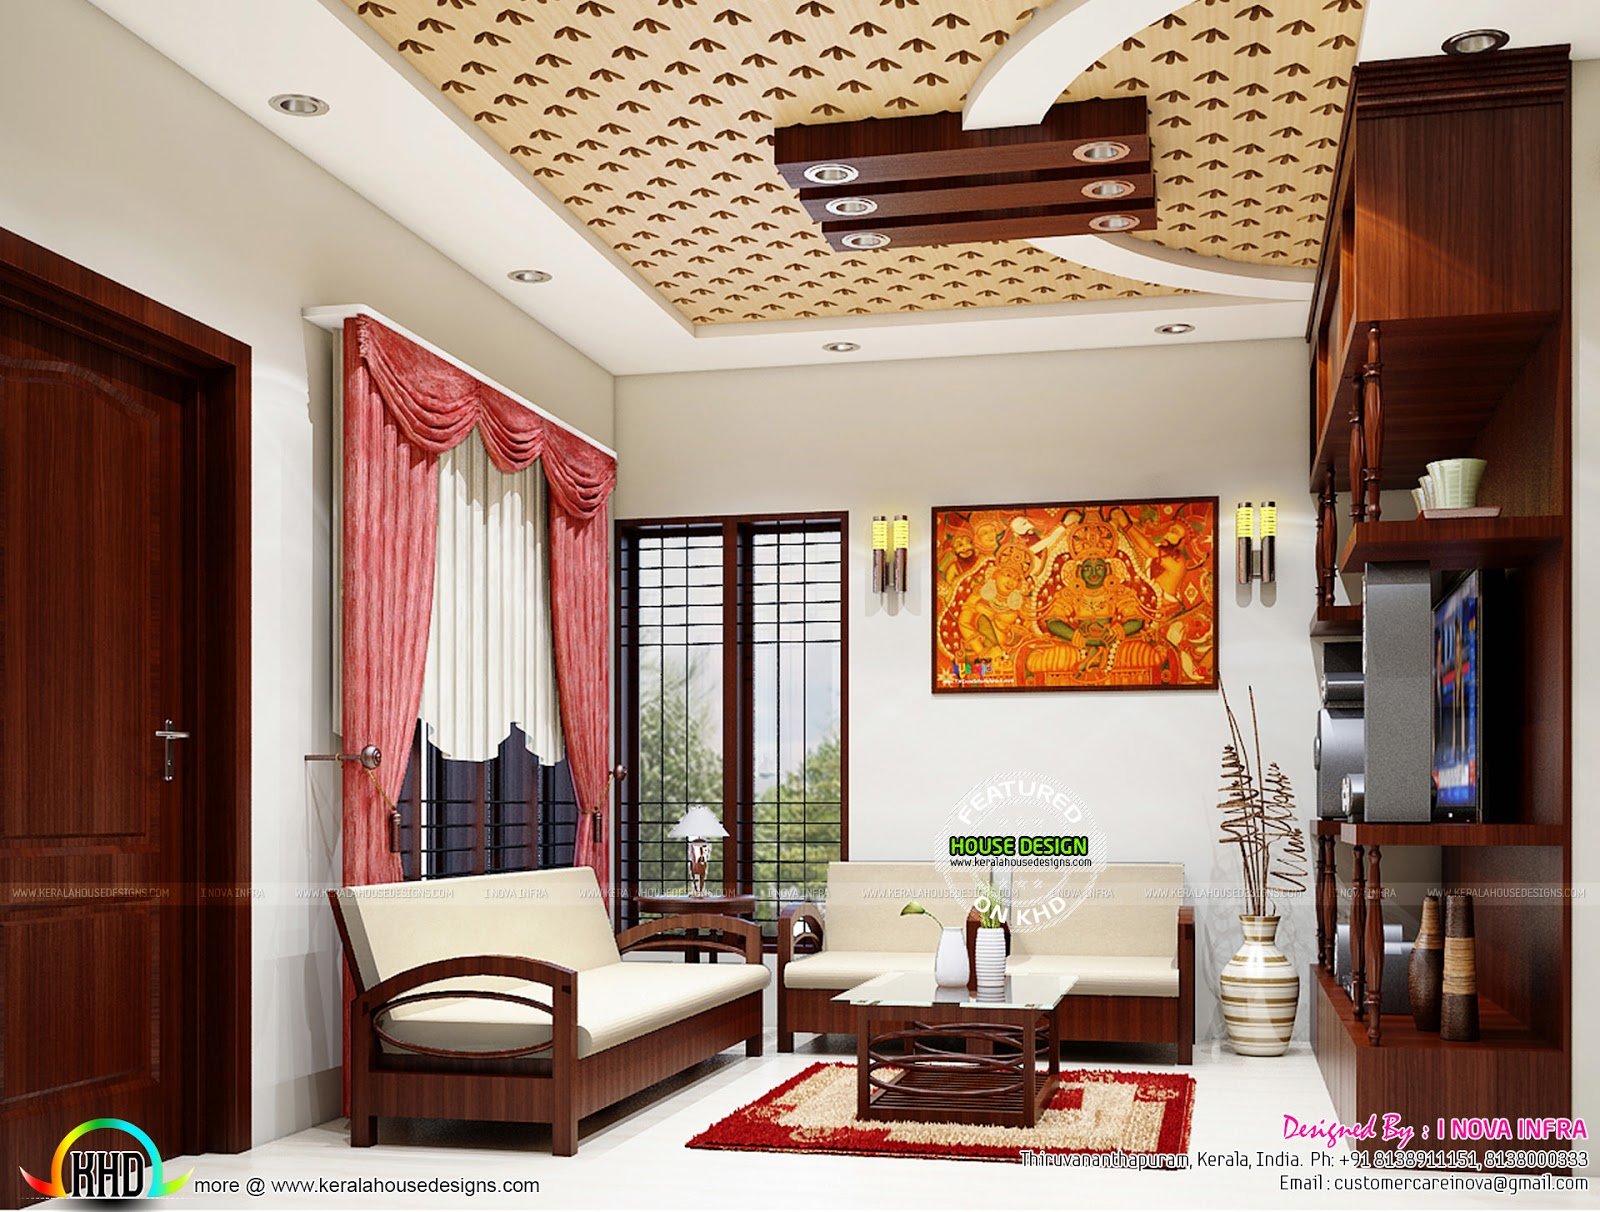 Kerala traditional interiors kerala home design and for Home design interior design